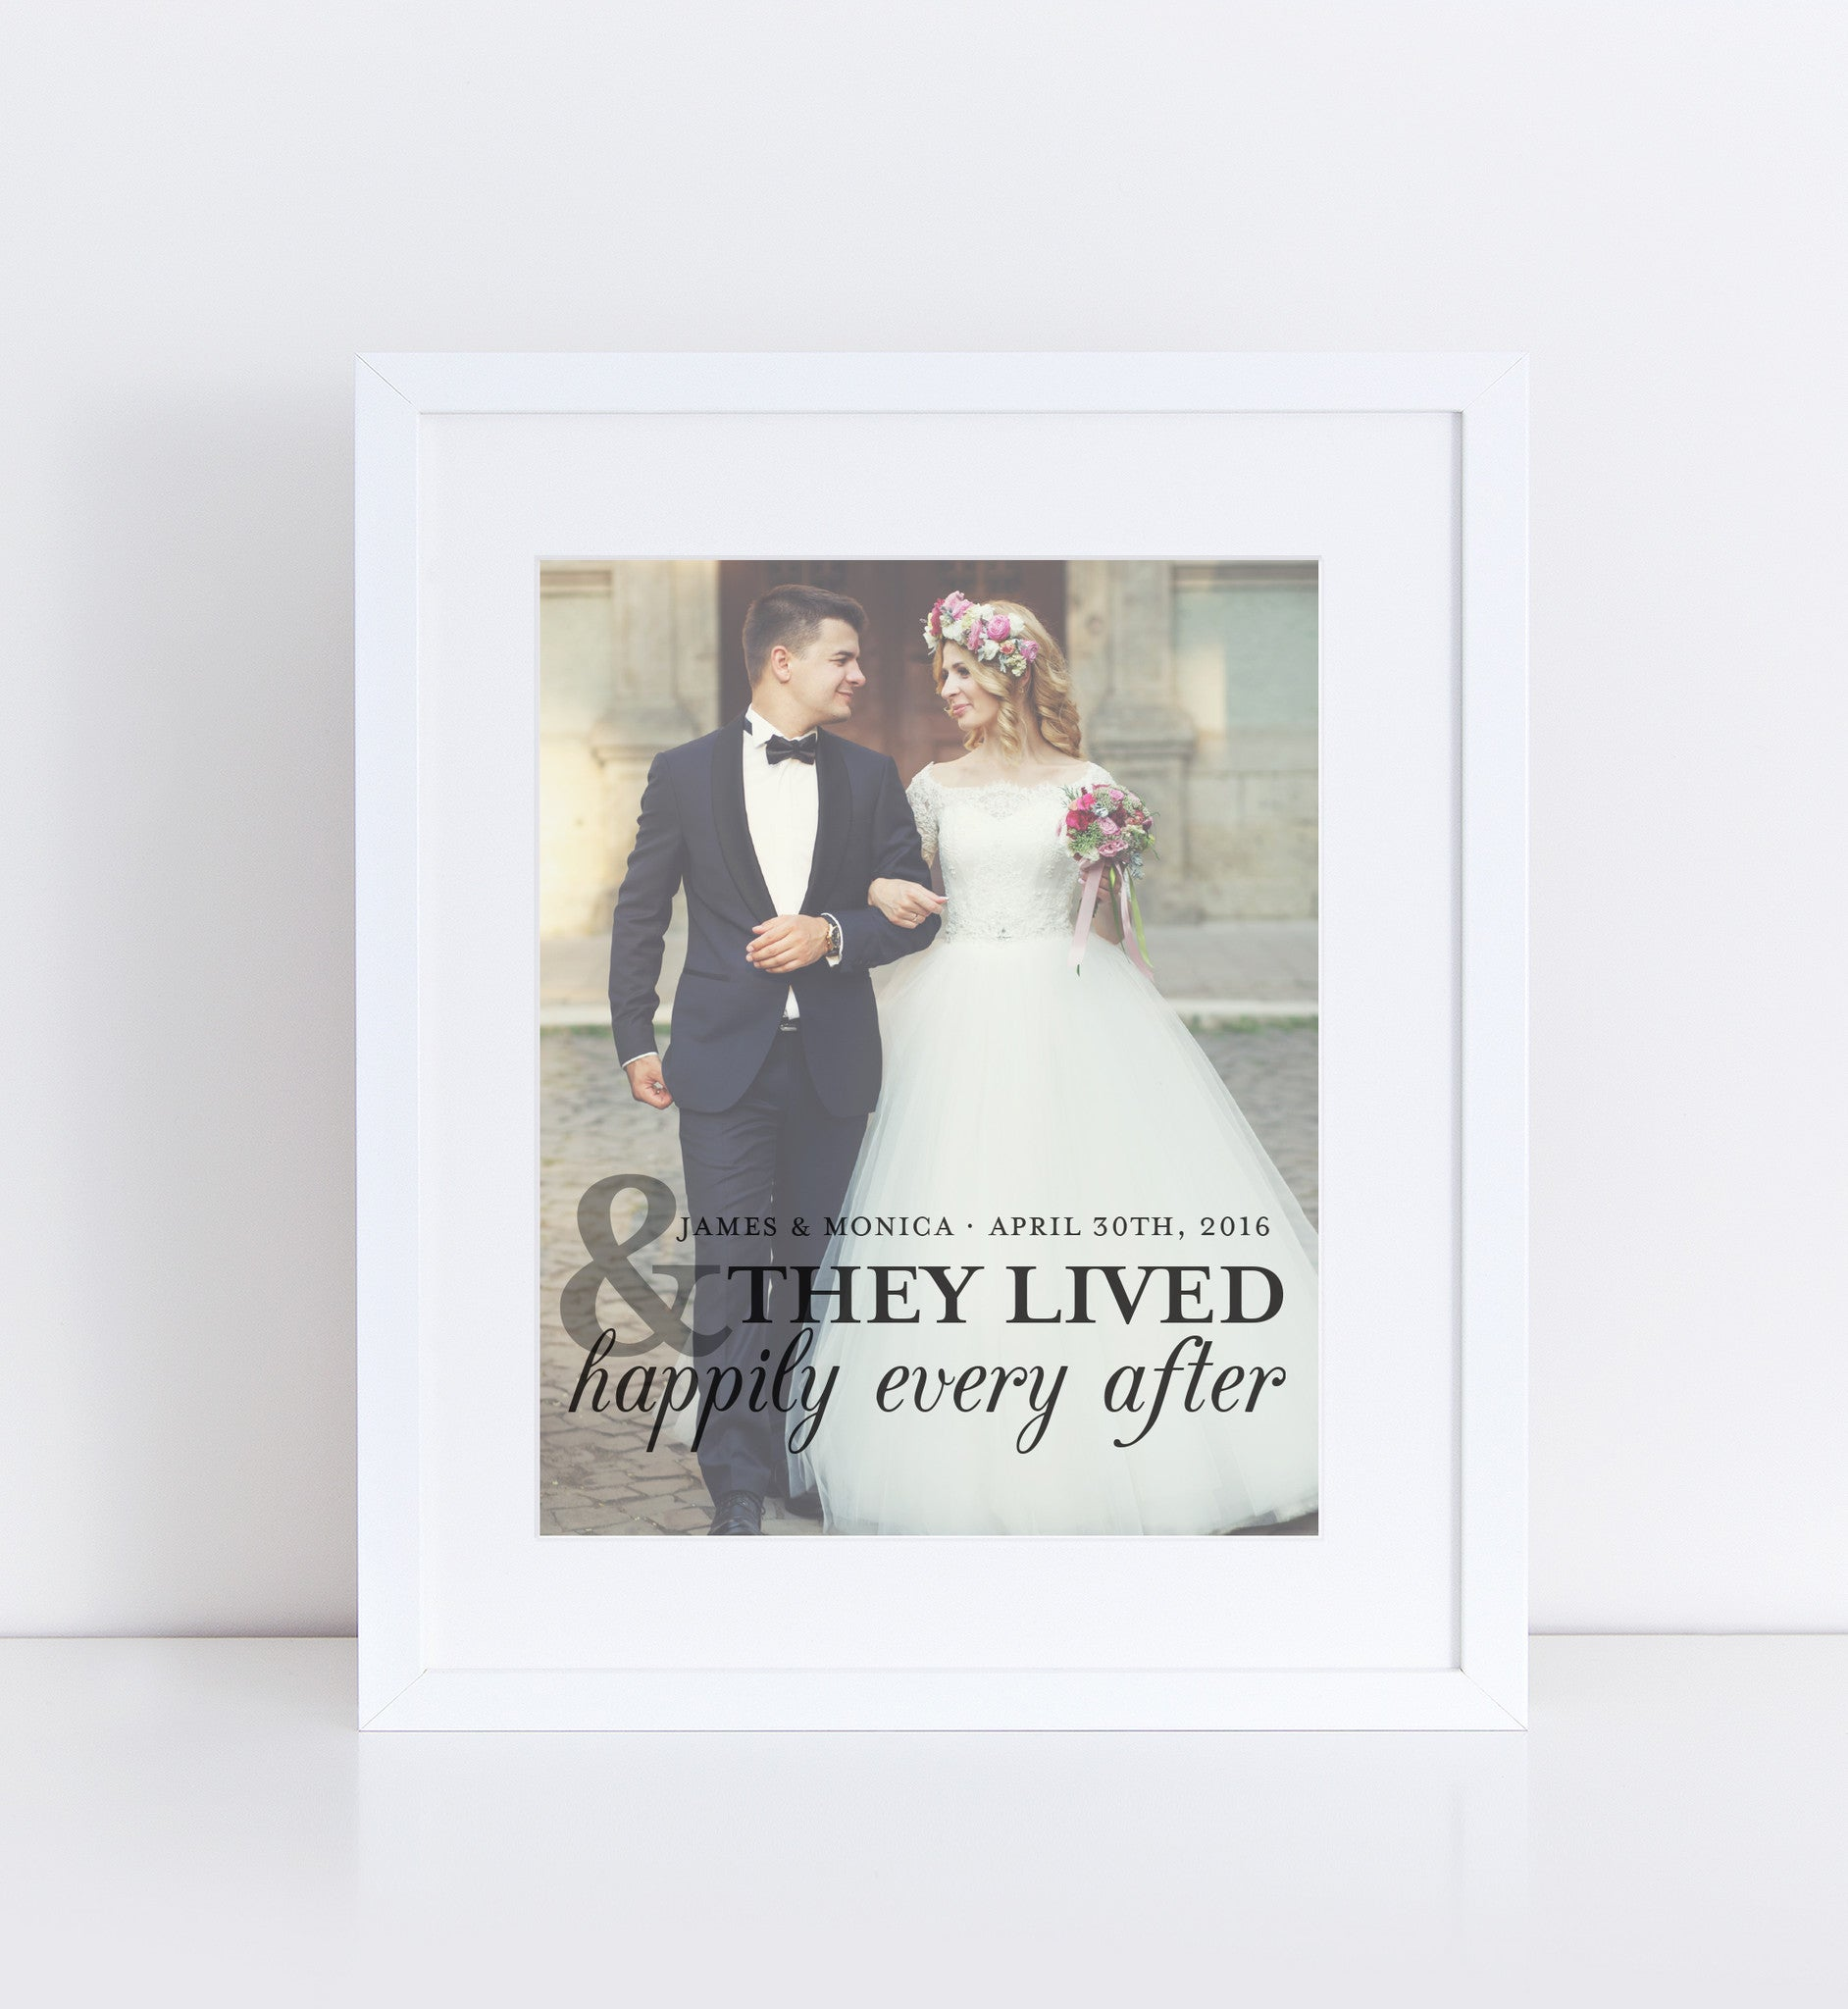 Happily Ever After Photo Quote, Personalized Photo Gifts